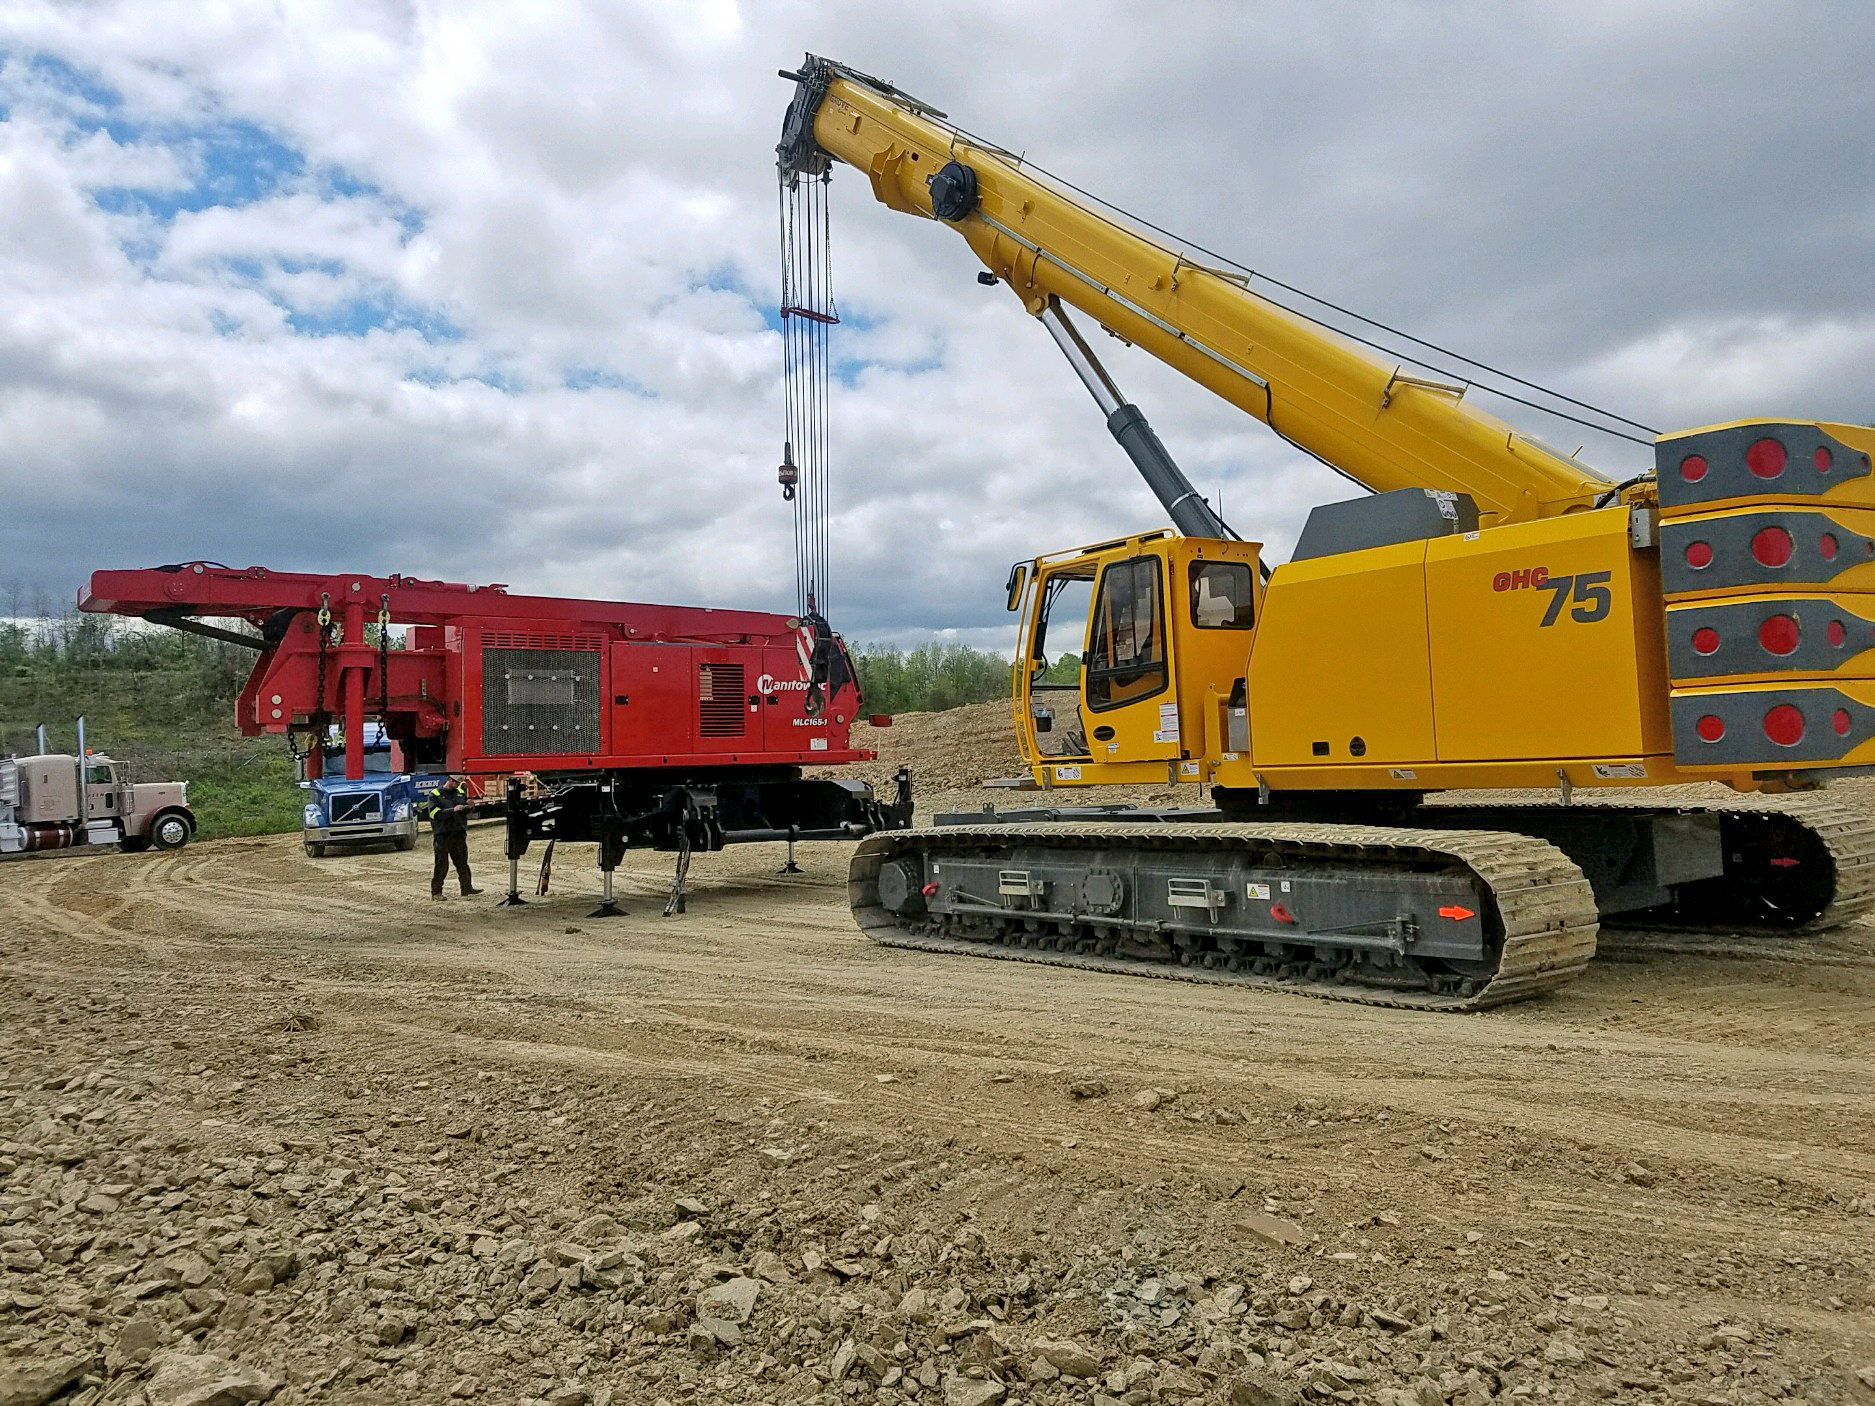 http://clients.se10.com/Manitowoc/Press-Release/2017/NA/December/GHC75/Contractors-use-Grove-GHC75-to-assemble-Manitowoc-crawler-on-tough-terrain-1.jpg